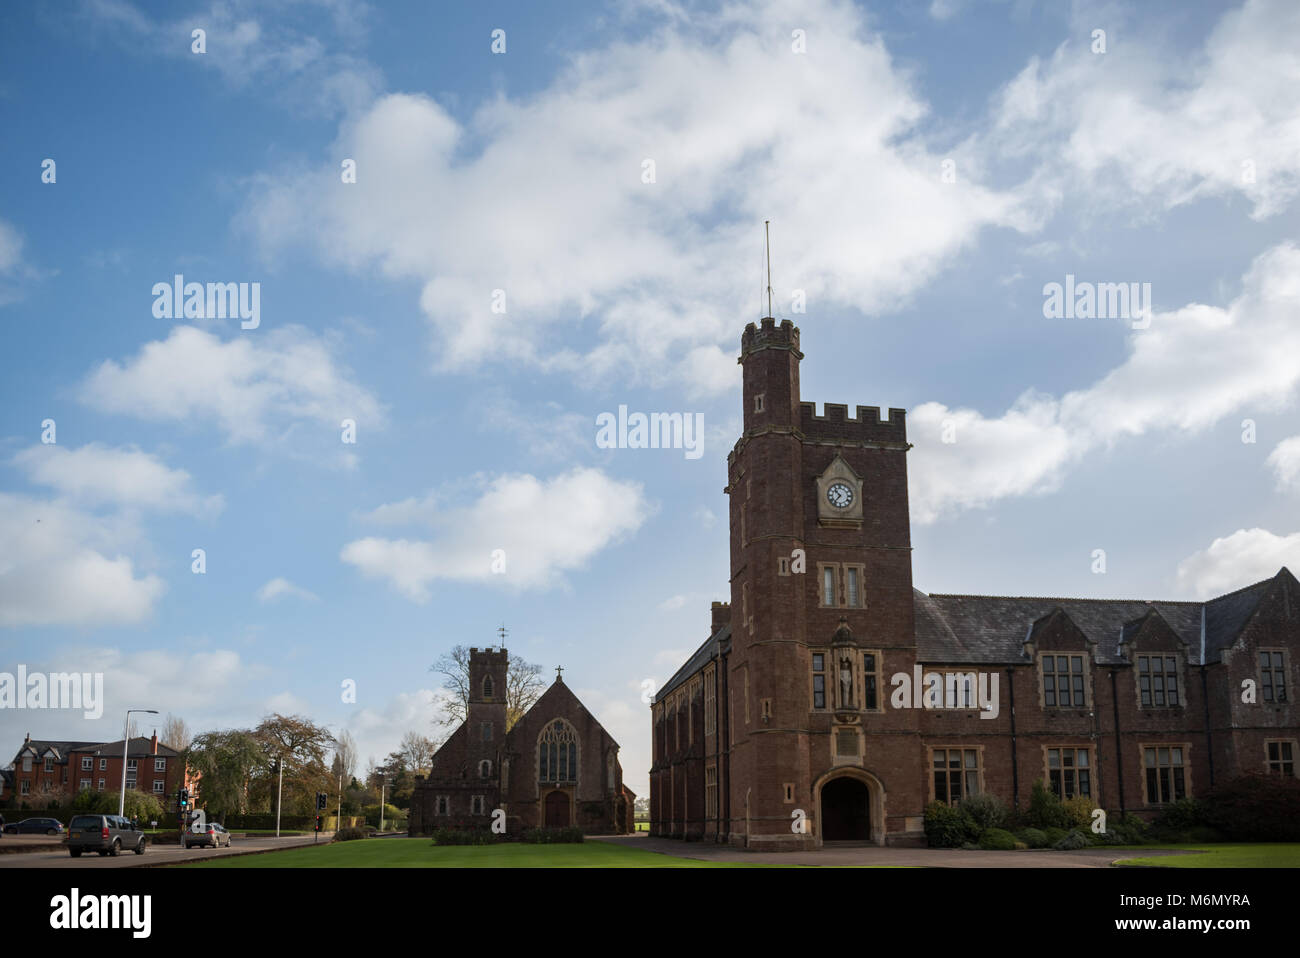 Blundell's School under a blue sky - Stock Image